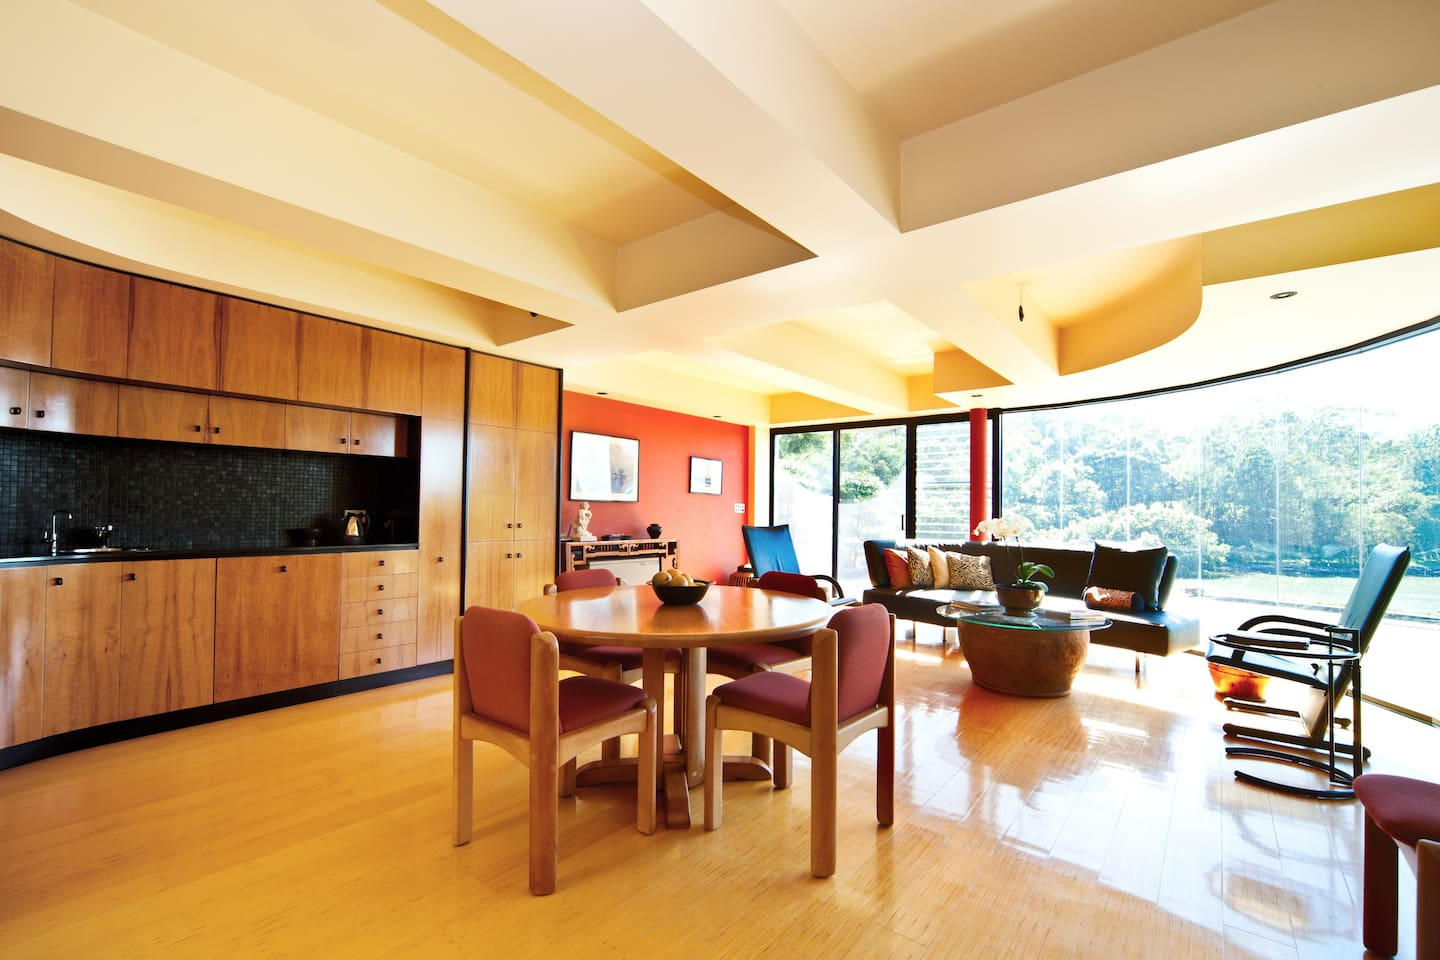 Spacious living, dining, kitchen by day